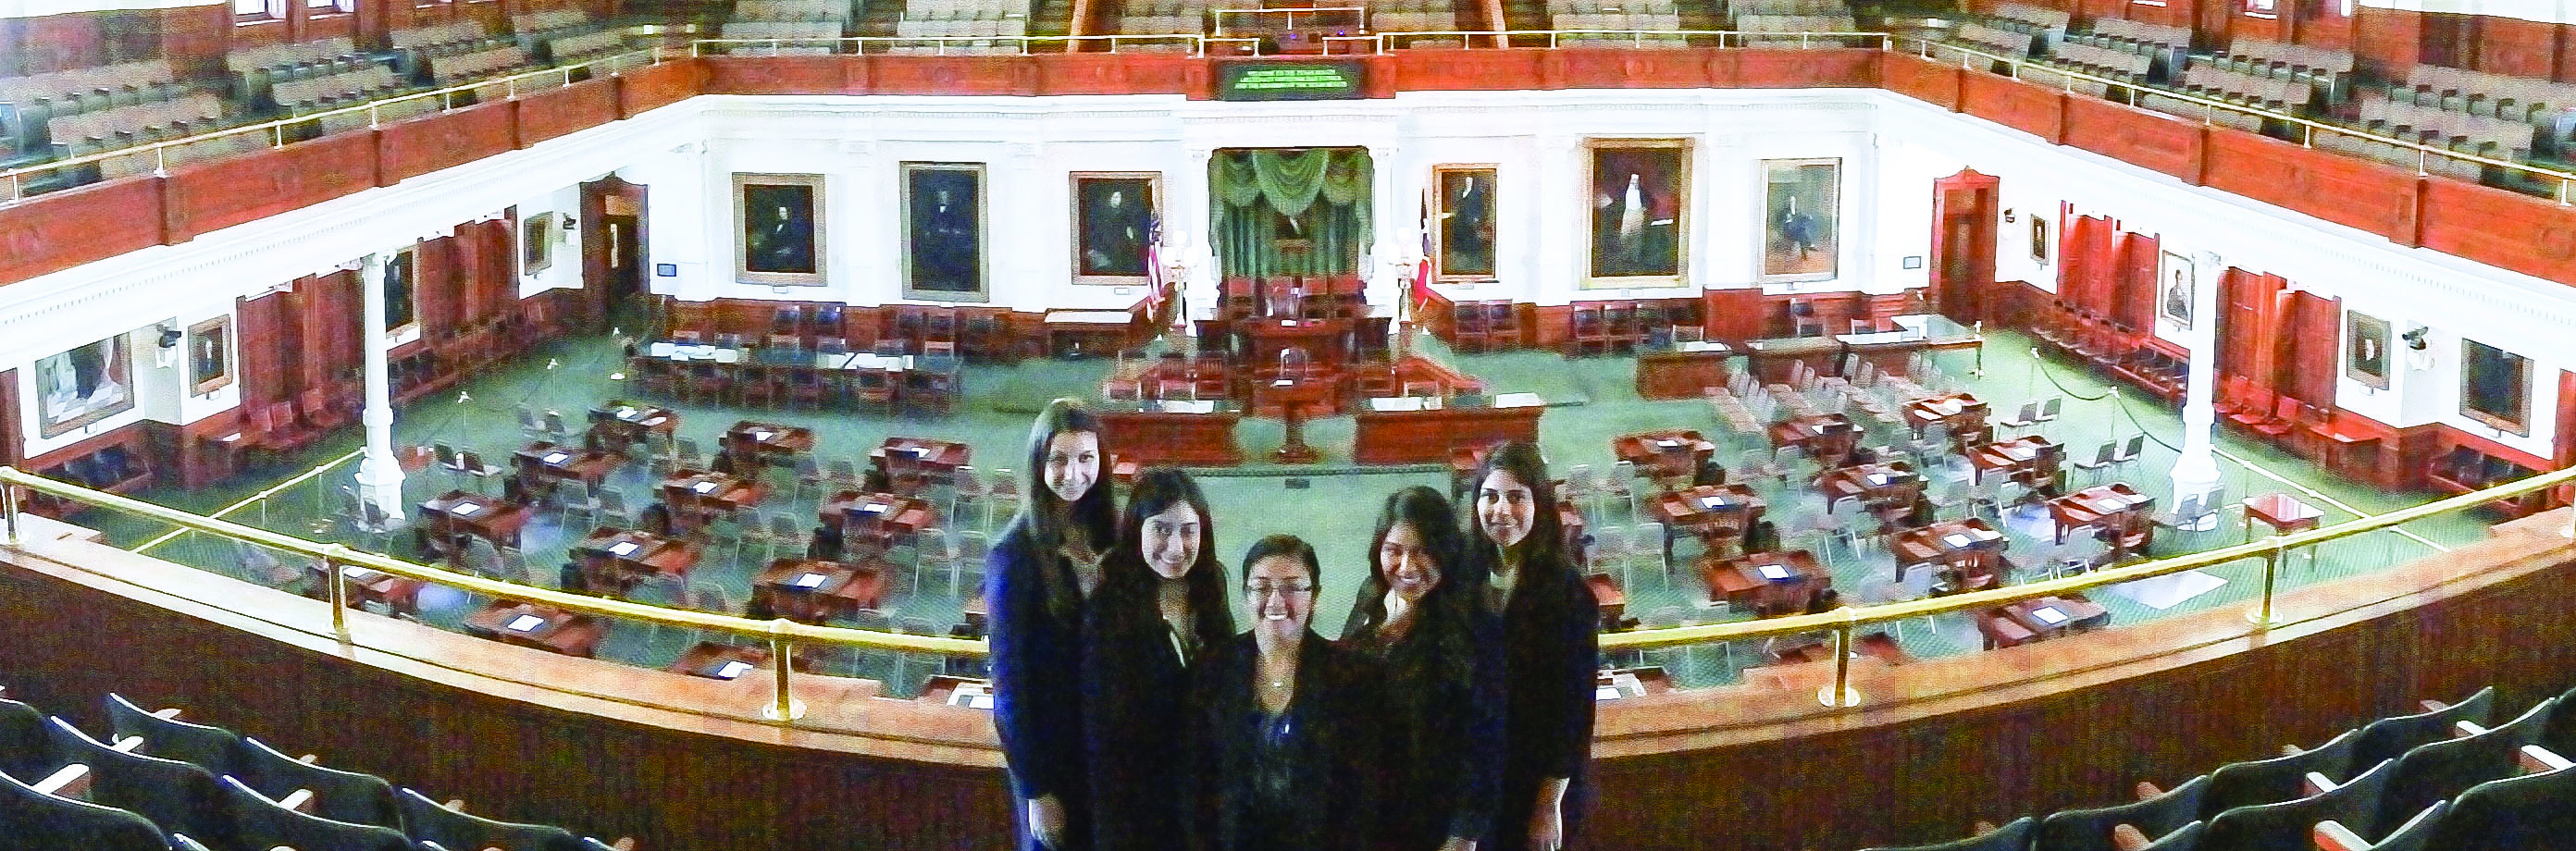 Capitol_Senate_Girls_Pano_1